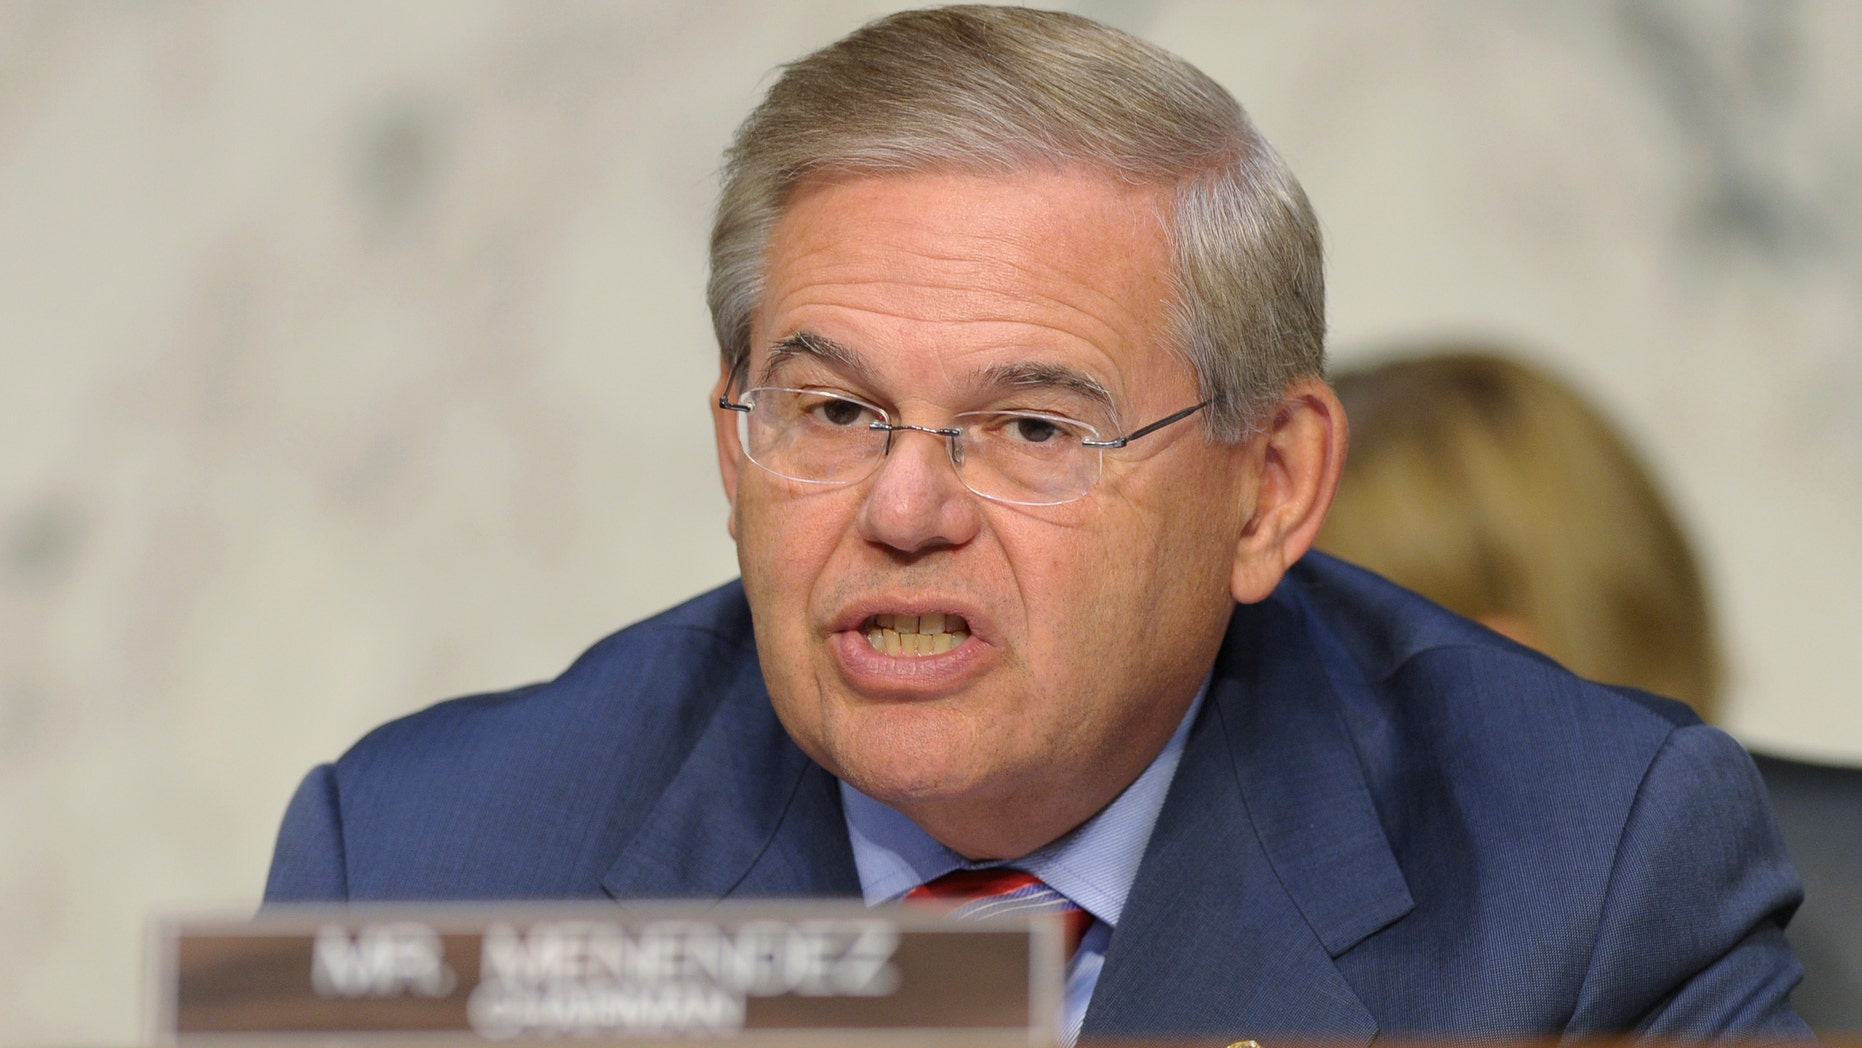 FILE - In this Sept. 4, 2013, file photo, Sen. Robert Menendez, D-N.J. speaks at Capitol Hill in Washington. Key Democratic and Republican senators are crafting legislation to reinstate the full force of Iran sanctions and impose new ones if Tehran doesnât make good on its pledge to roll back its nuclear program, brushing aside the Obama administrationâs fears about upending its diplomatic momentum. Menendez and Sen. Mark Kirk, R-Ill., hope to have the bill ready for other lawmakers to consider when the Senate returns Dec. 9 from its two-week recess, according to legislative aides. (AP Photo/Susan Walsh)